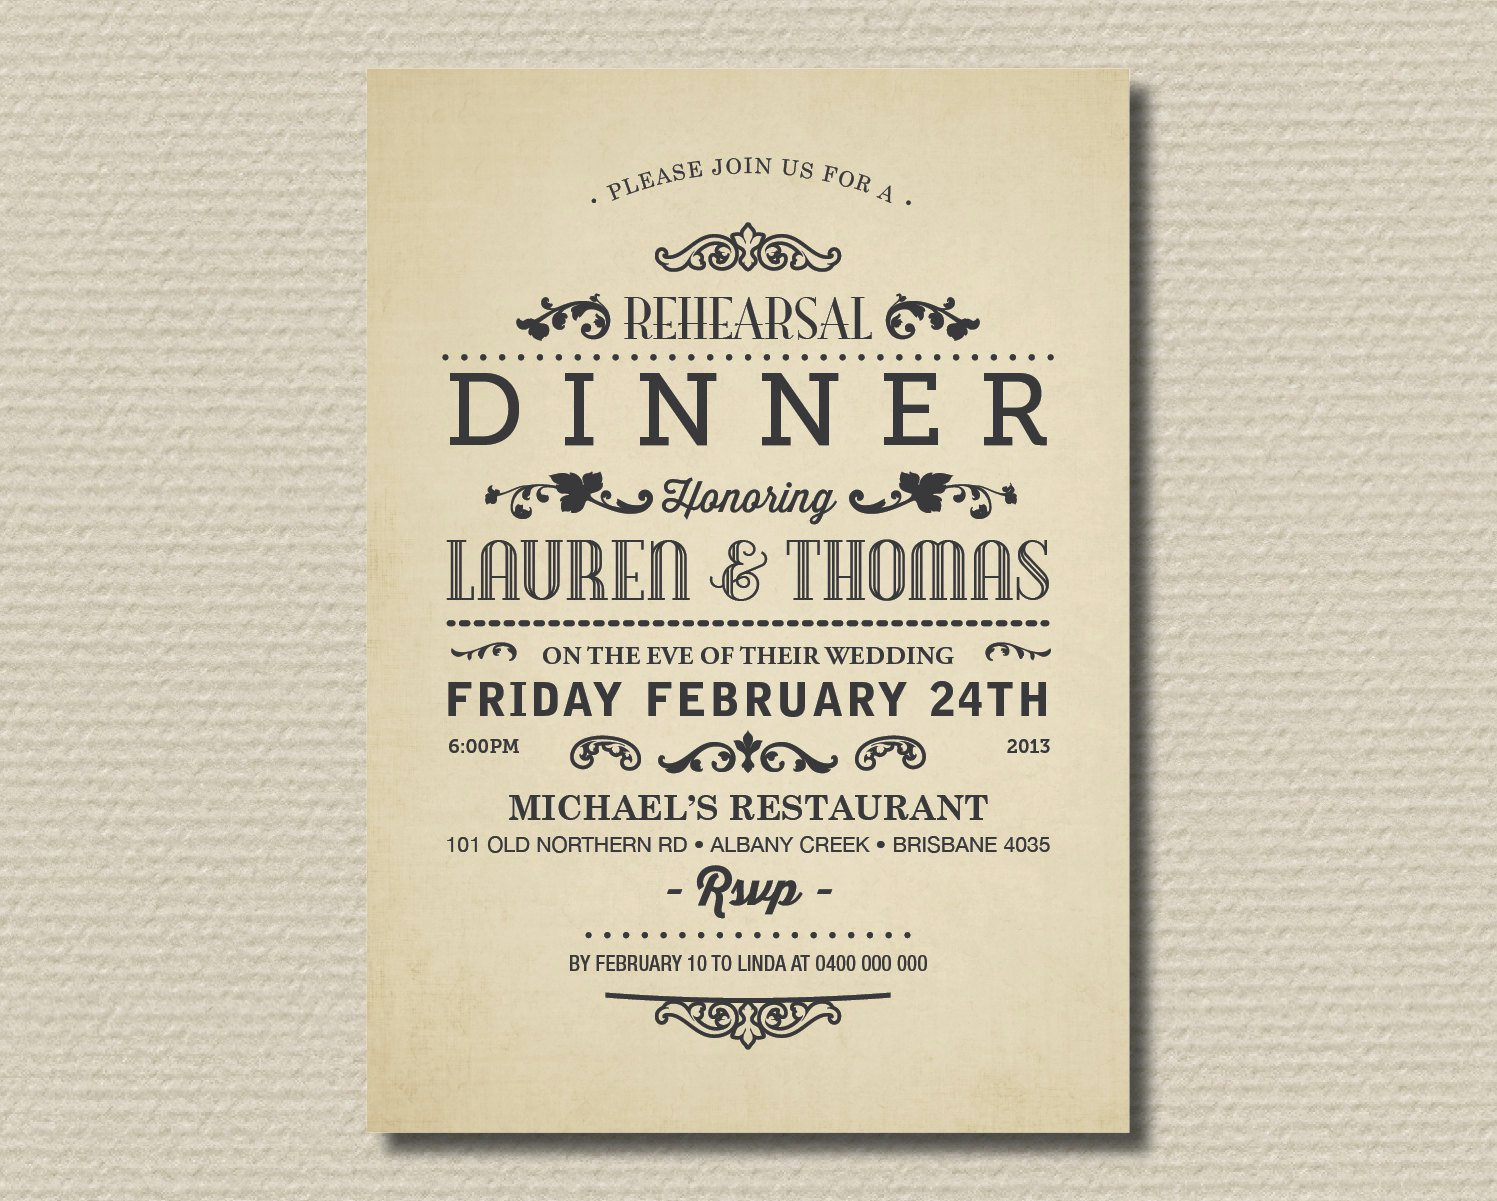 Birthday Dinner Invitation Wording Lovely Wedding Dinner Invitation Wording